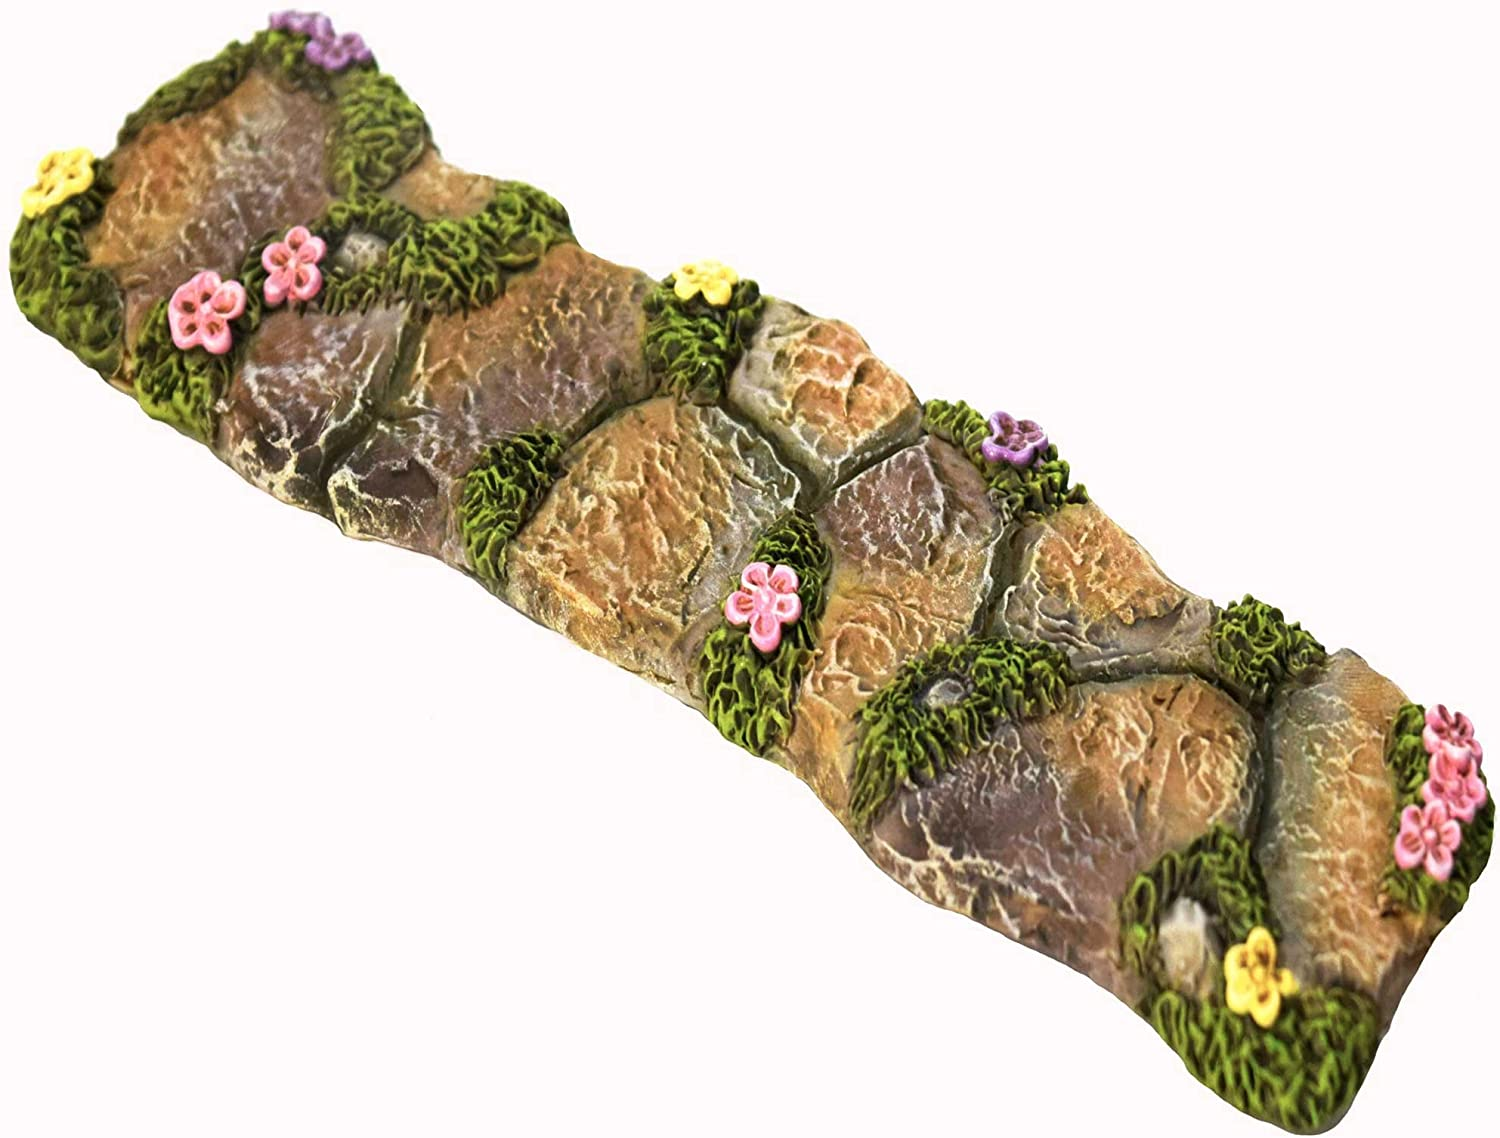 Twig & Flower The Miniature Fairy Garden Walkway with Lovely Hand Painted Flowers and Fairy Moss